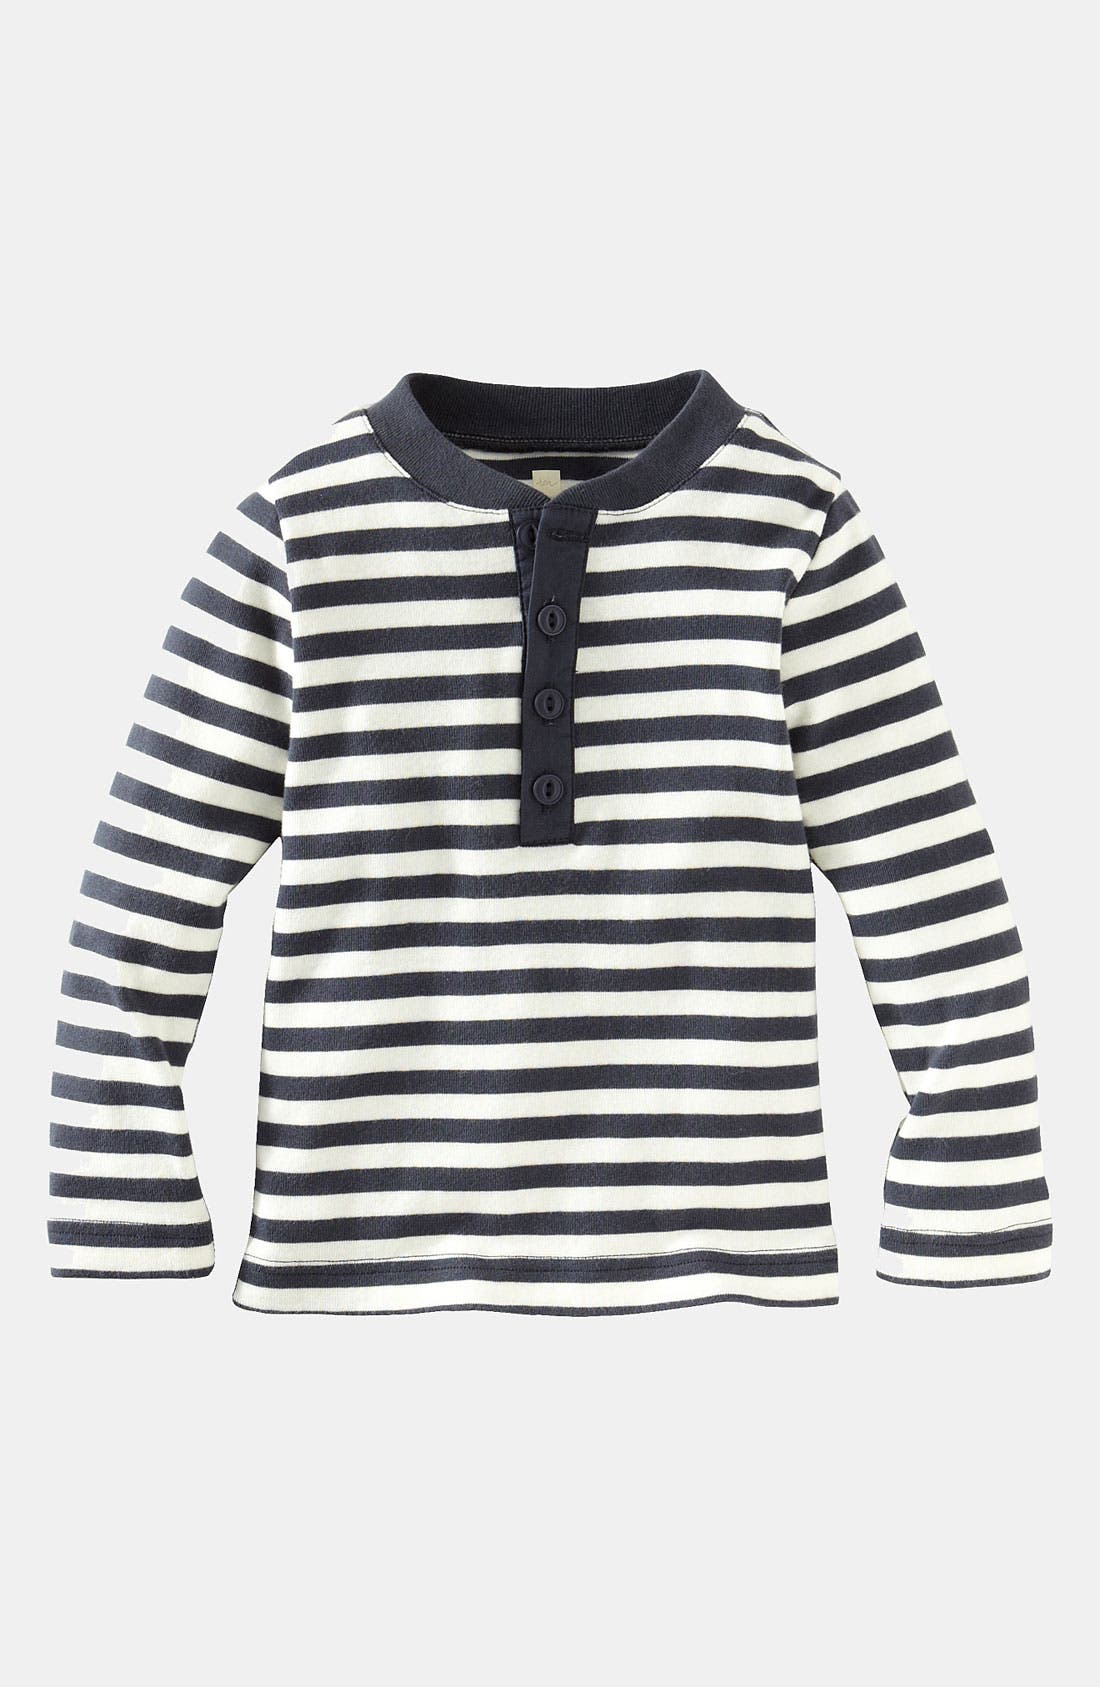 Main Image - Tea Collection Henley Shirt (Toddler)